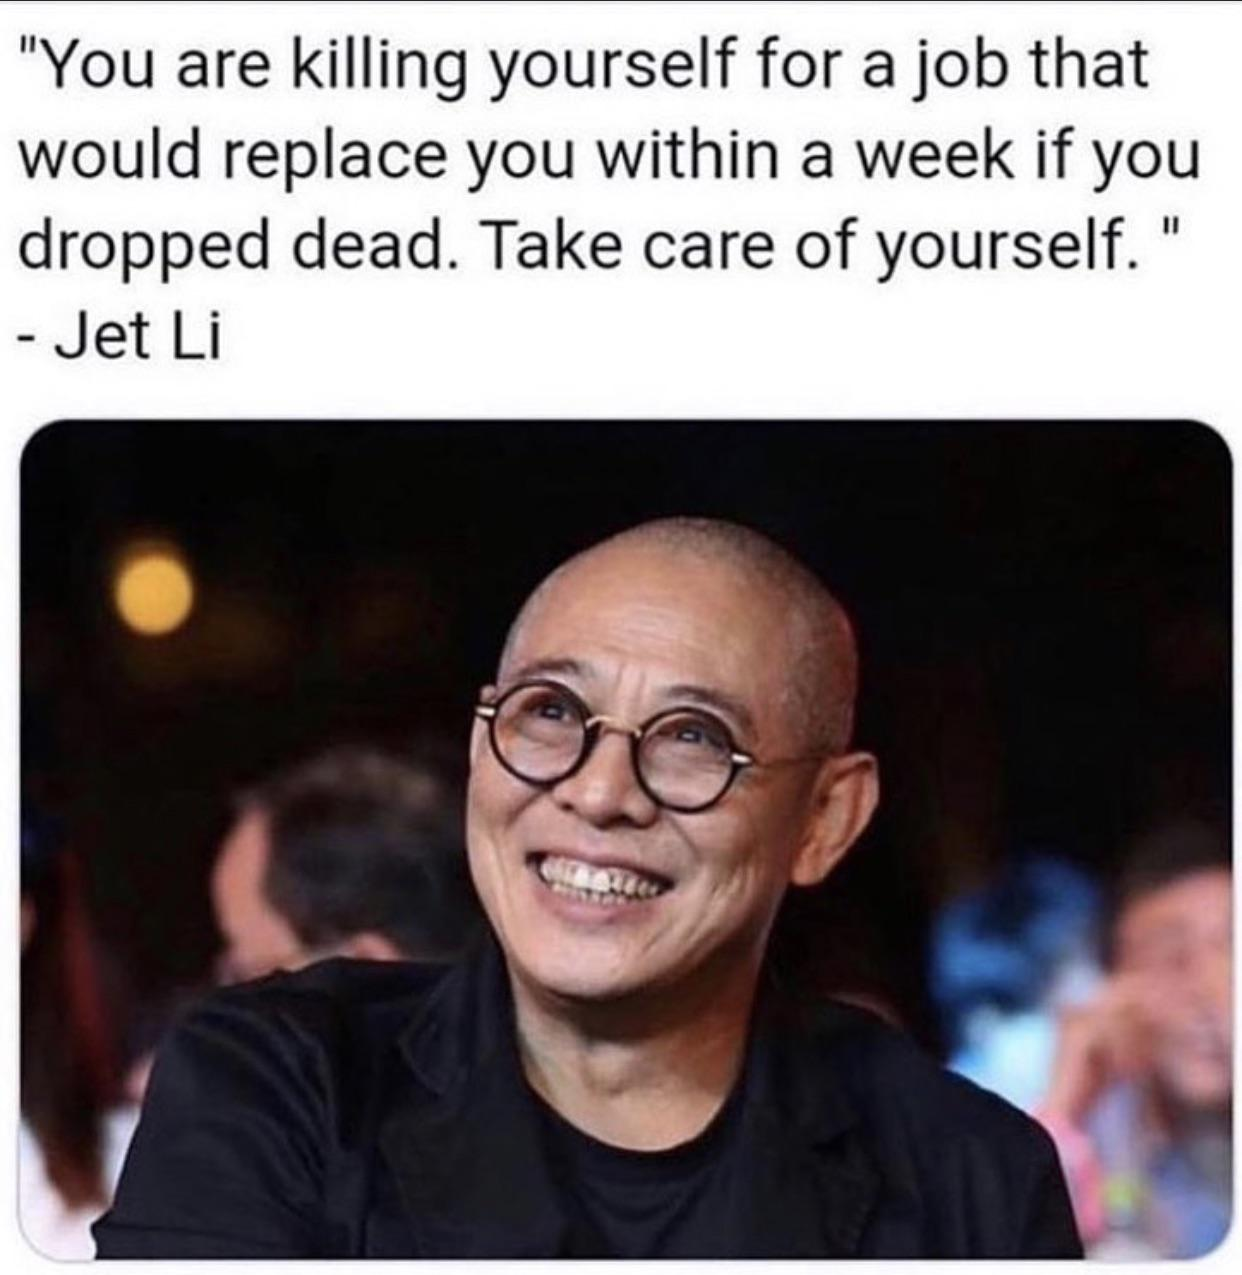 [image] you are killing yourself for a job that would replace you within a week if you drop dead. Take care of yourself.